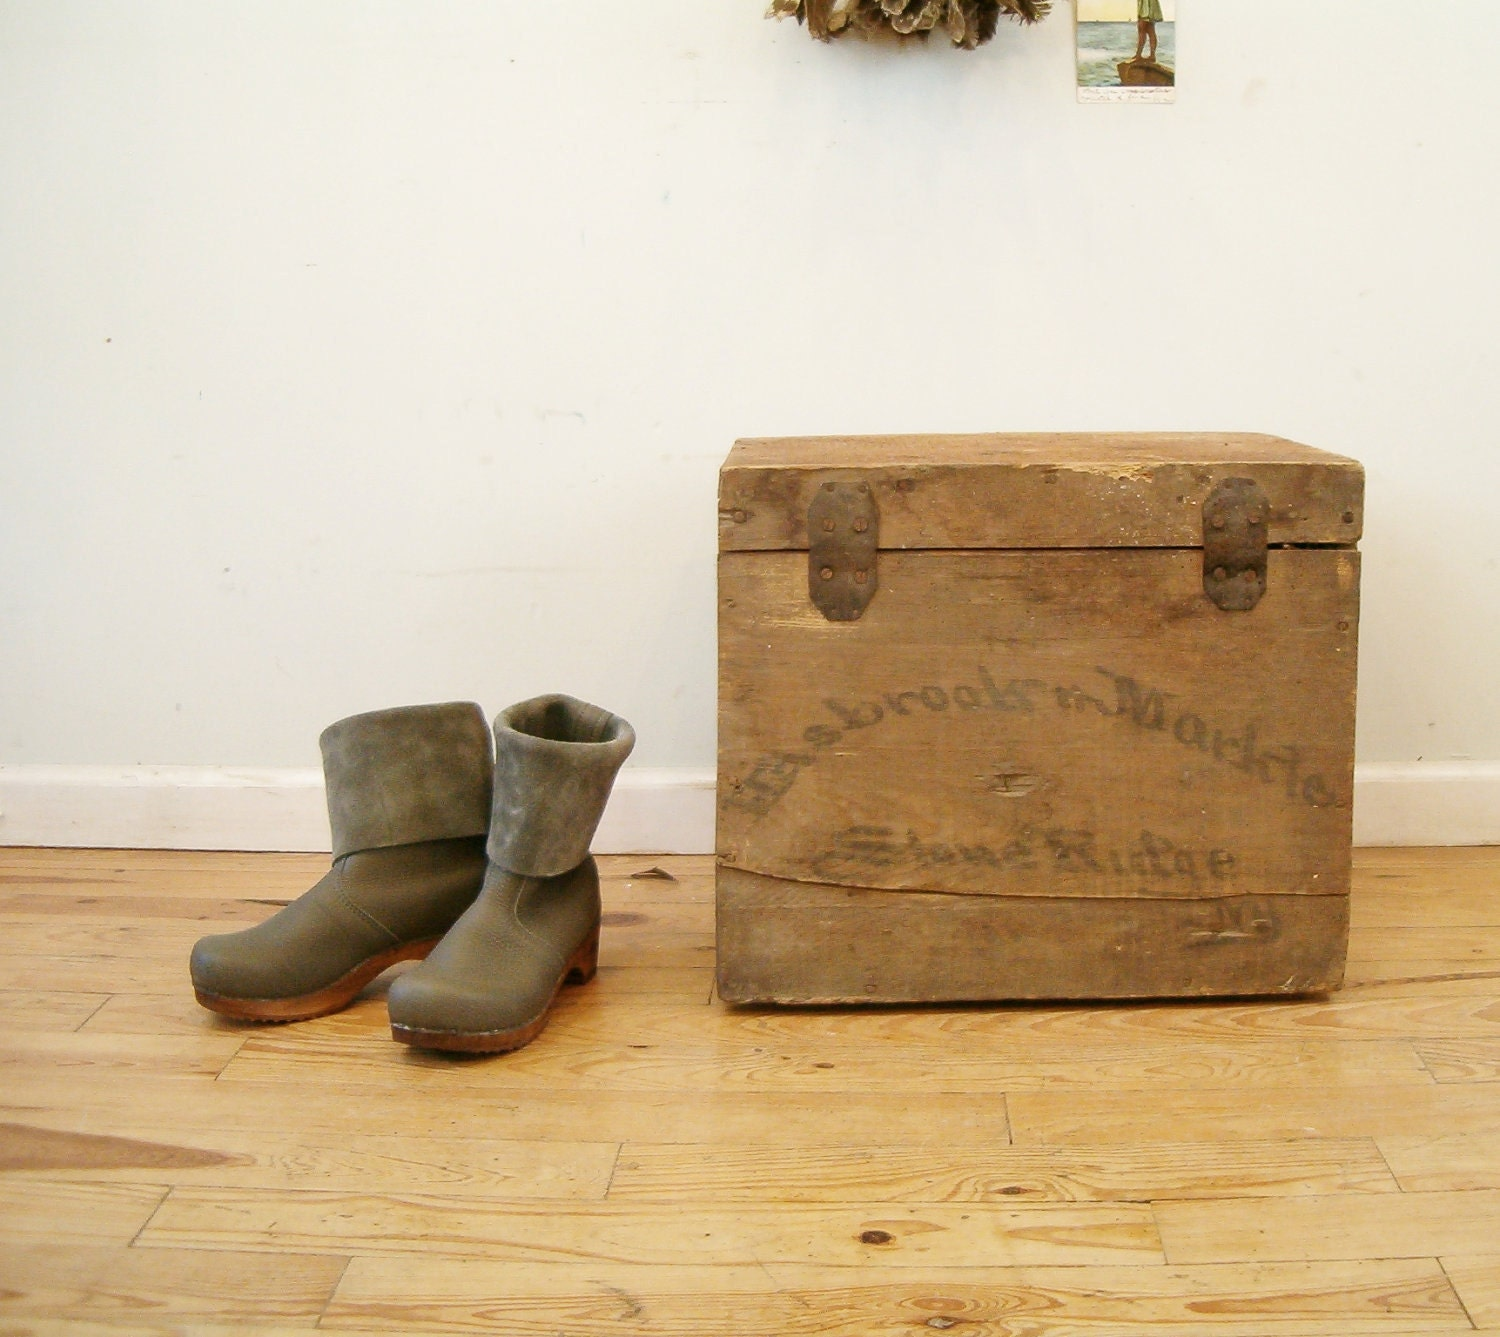 circa 1890 antique crate hand lettered shipping box